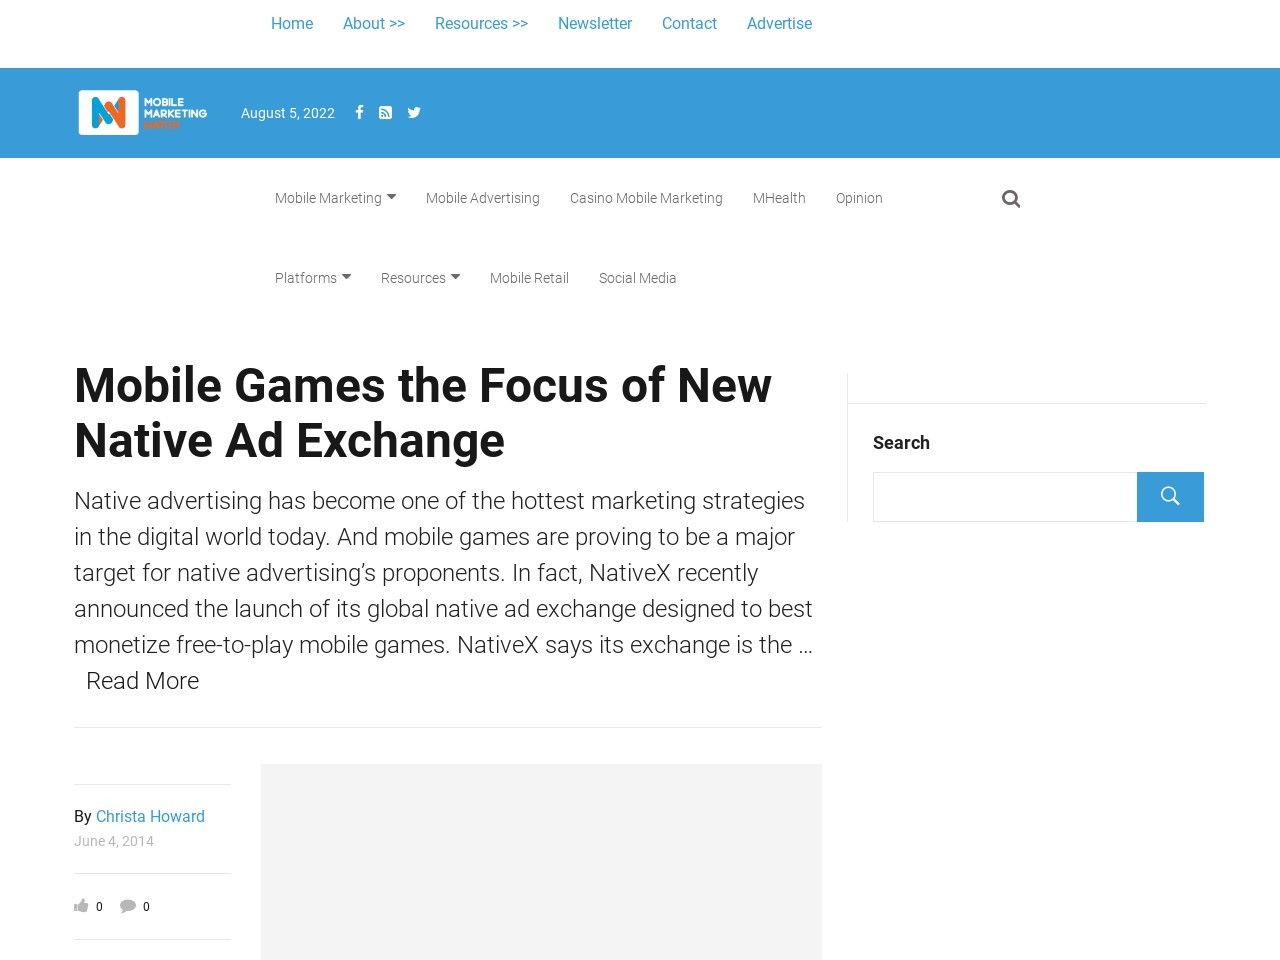 Mobile Games the Focus of New Native Ad Exchange